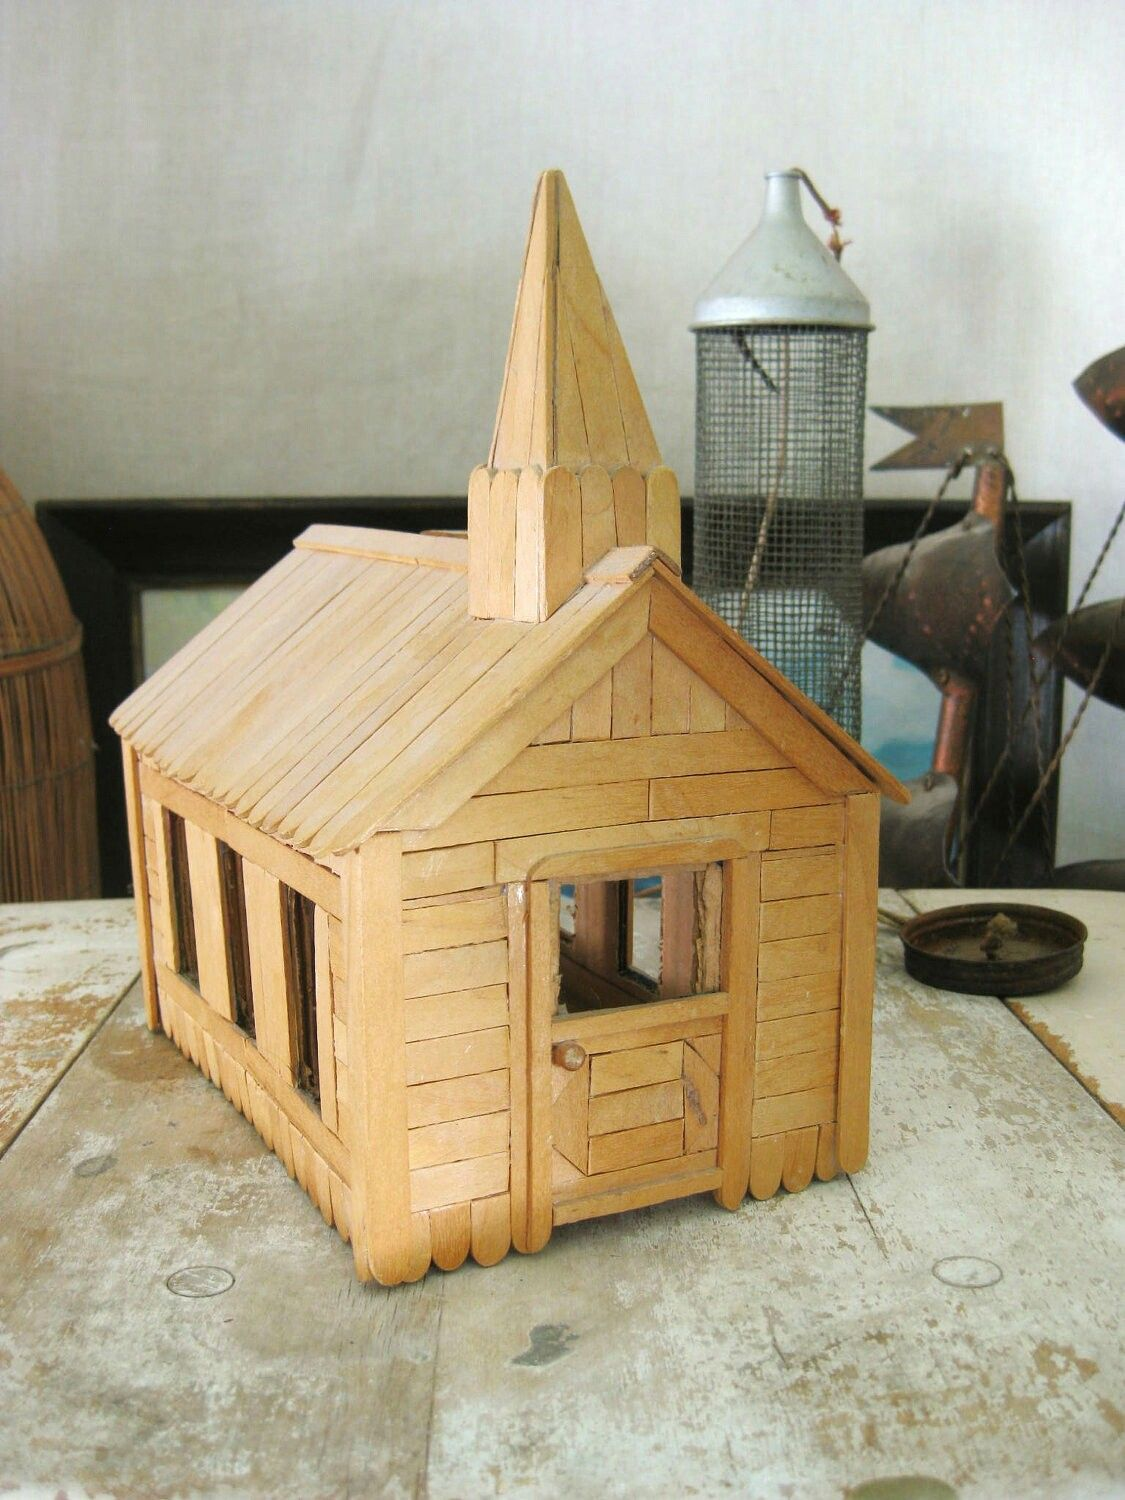 House design using popsicle sticks - This Is A Wonderful Vintage Popsicle Stick Church Signed And Dated Made By A Ww 1 Veteran From Shawneetown Ill